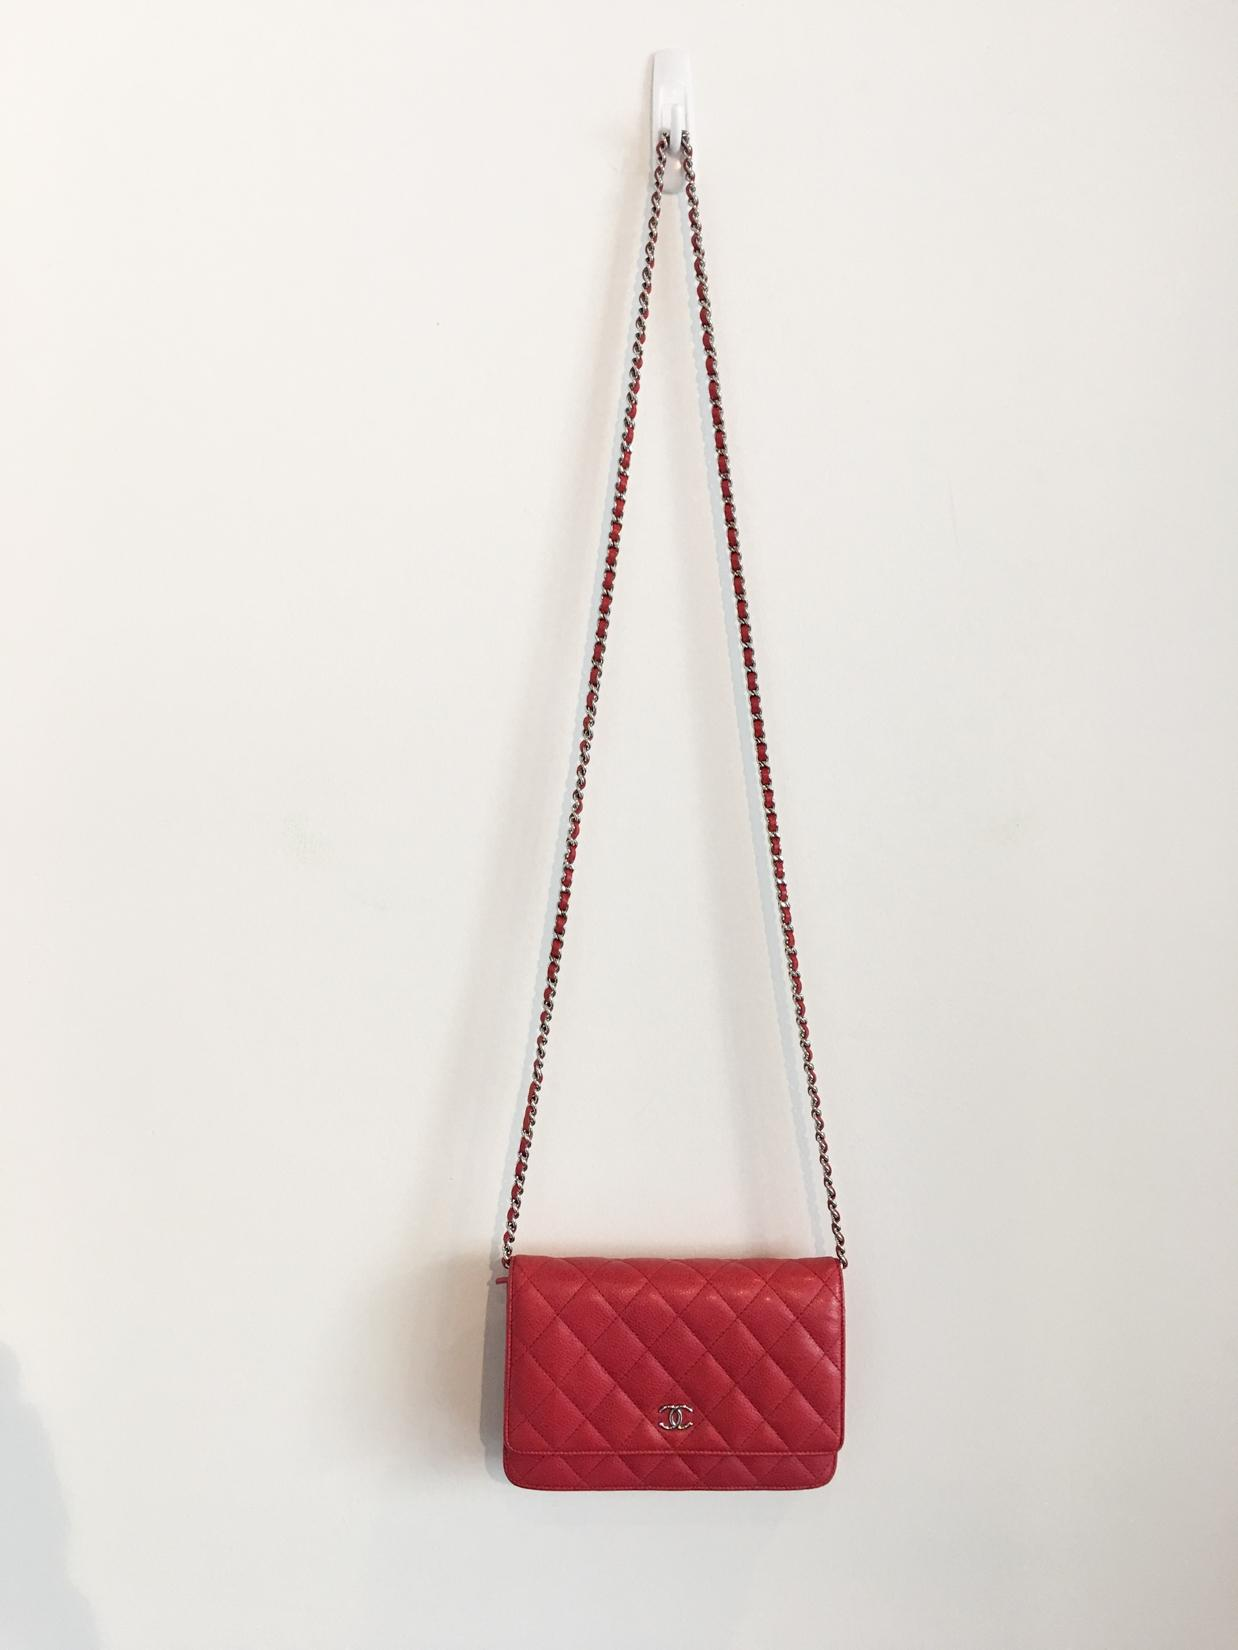 chanel caviar classic quilted woc red cross body bag